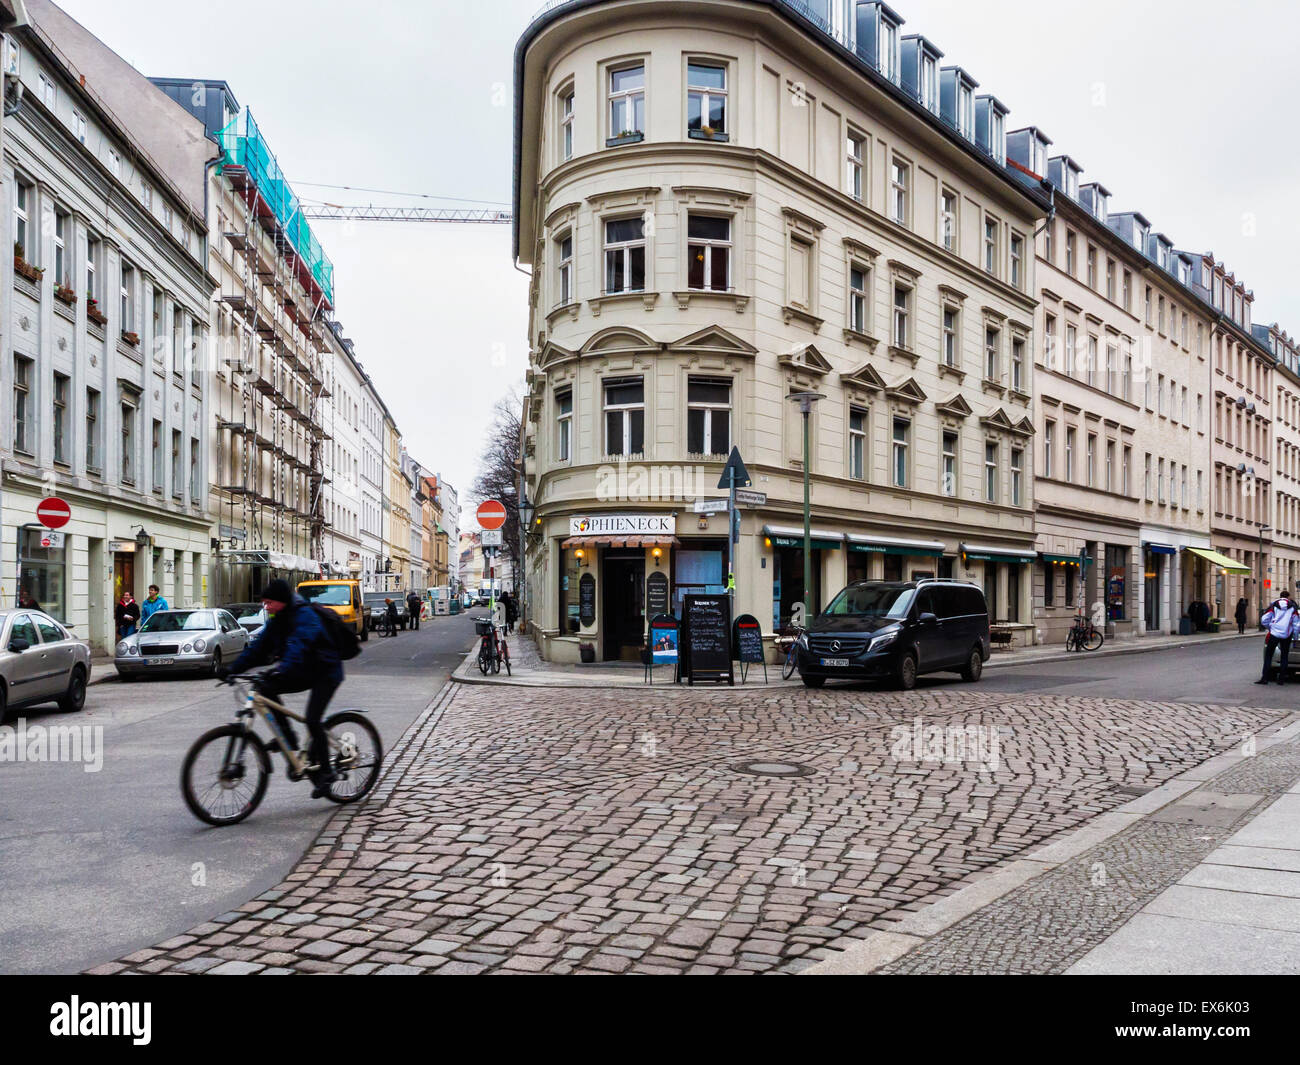 Berlin Sophieneck bar and restaurant exterior and Berlin street view with apartment buildings - Stock Image